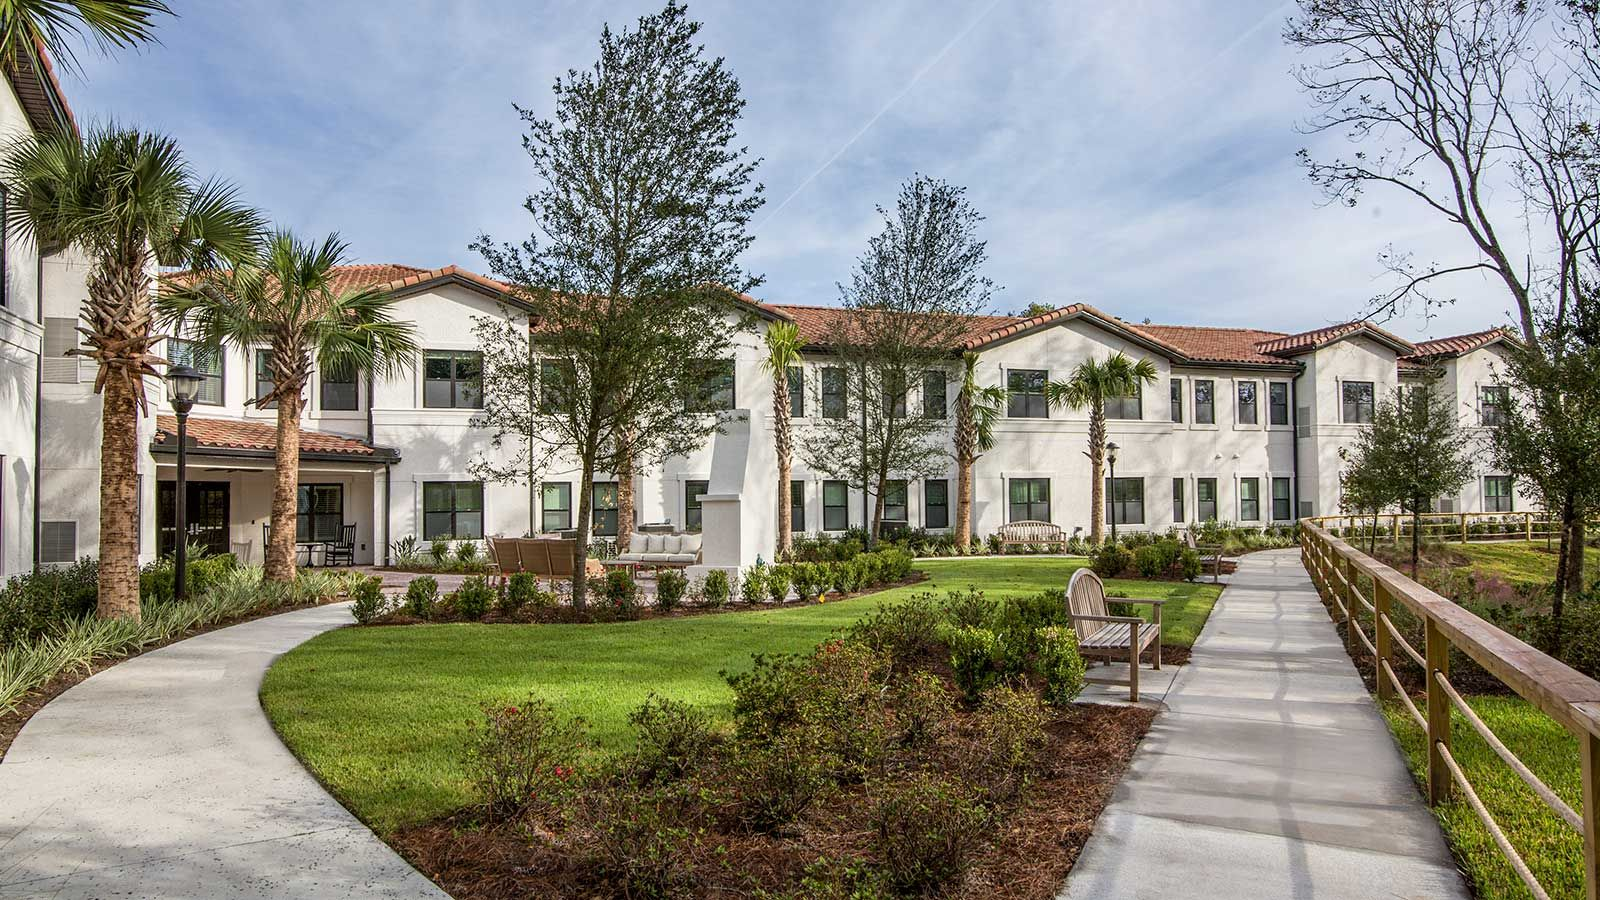 Jacksonville Senior Apartments